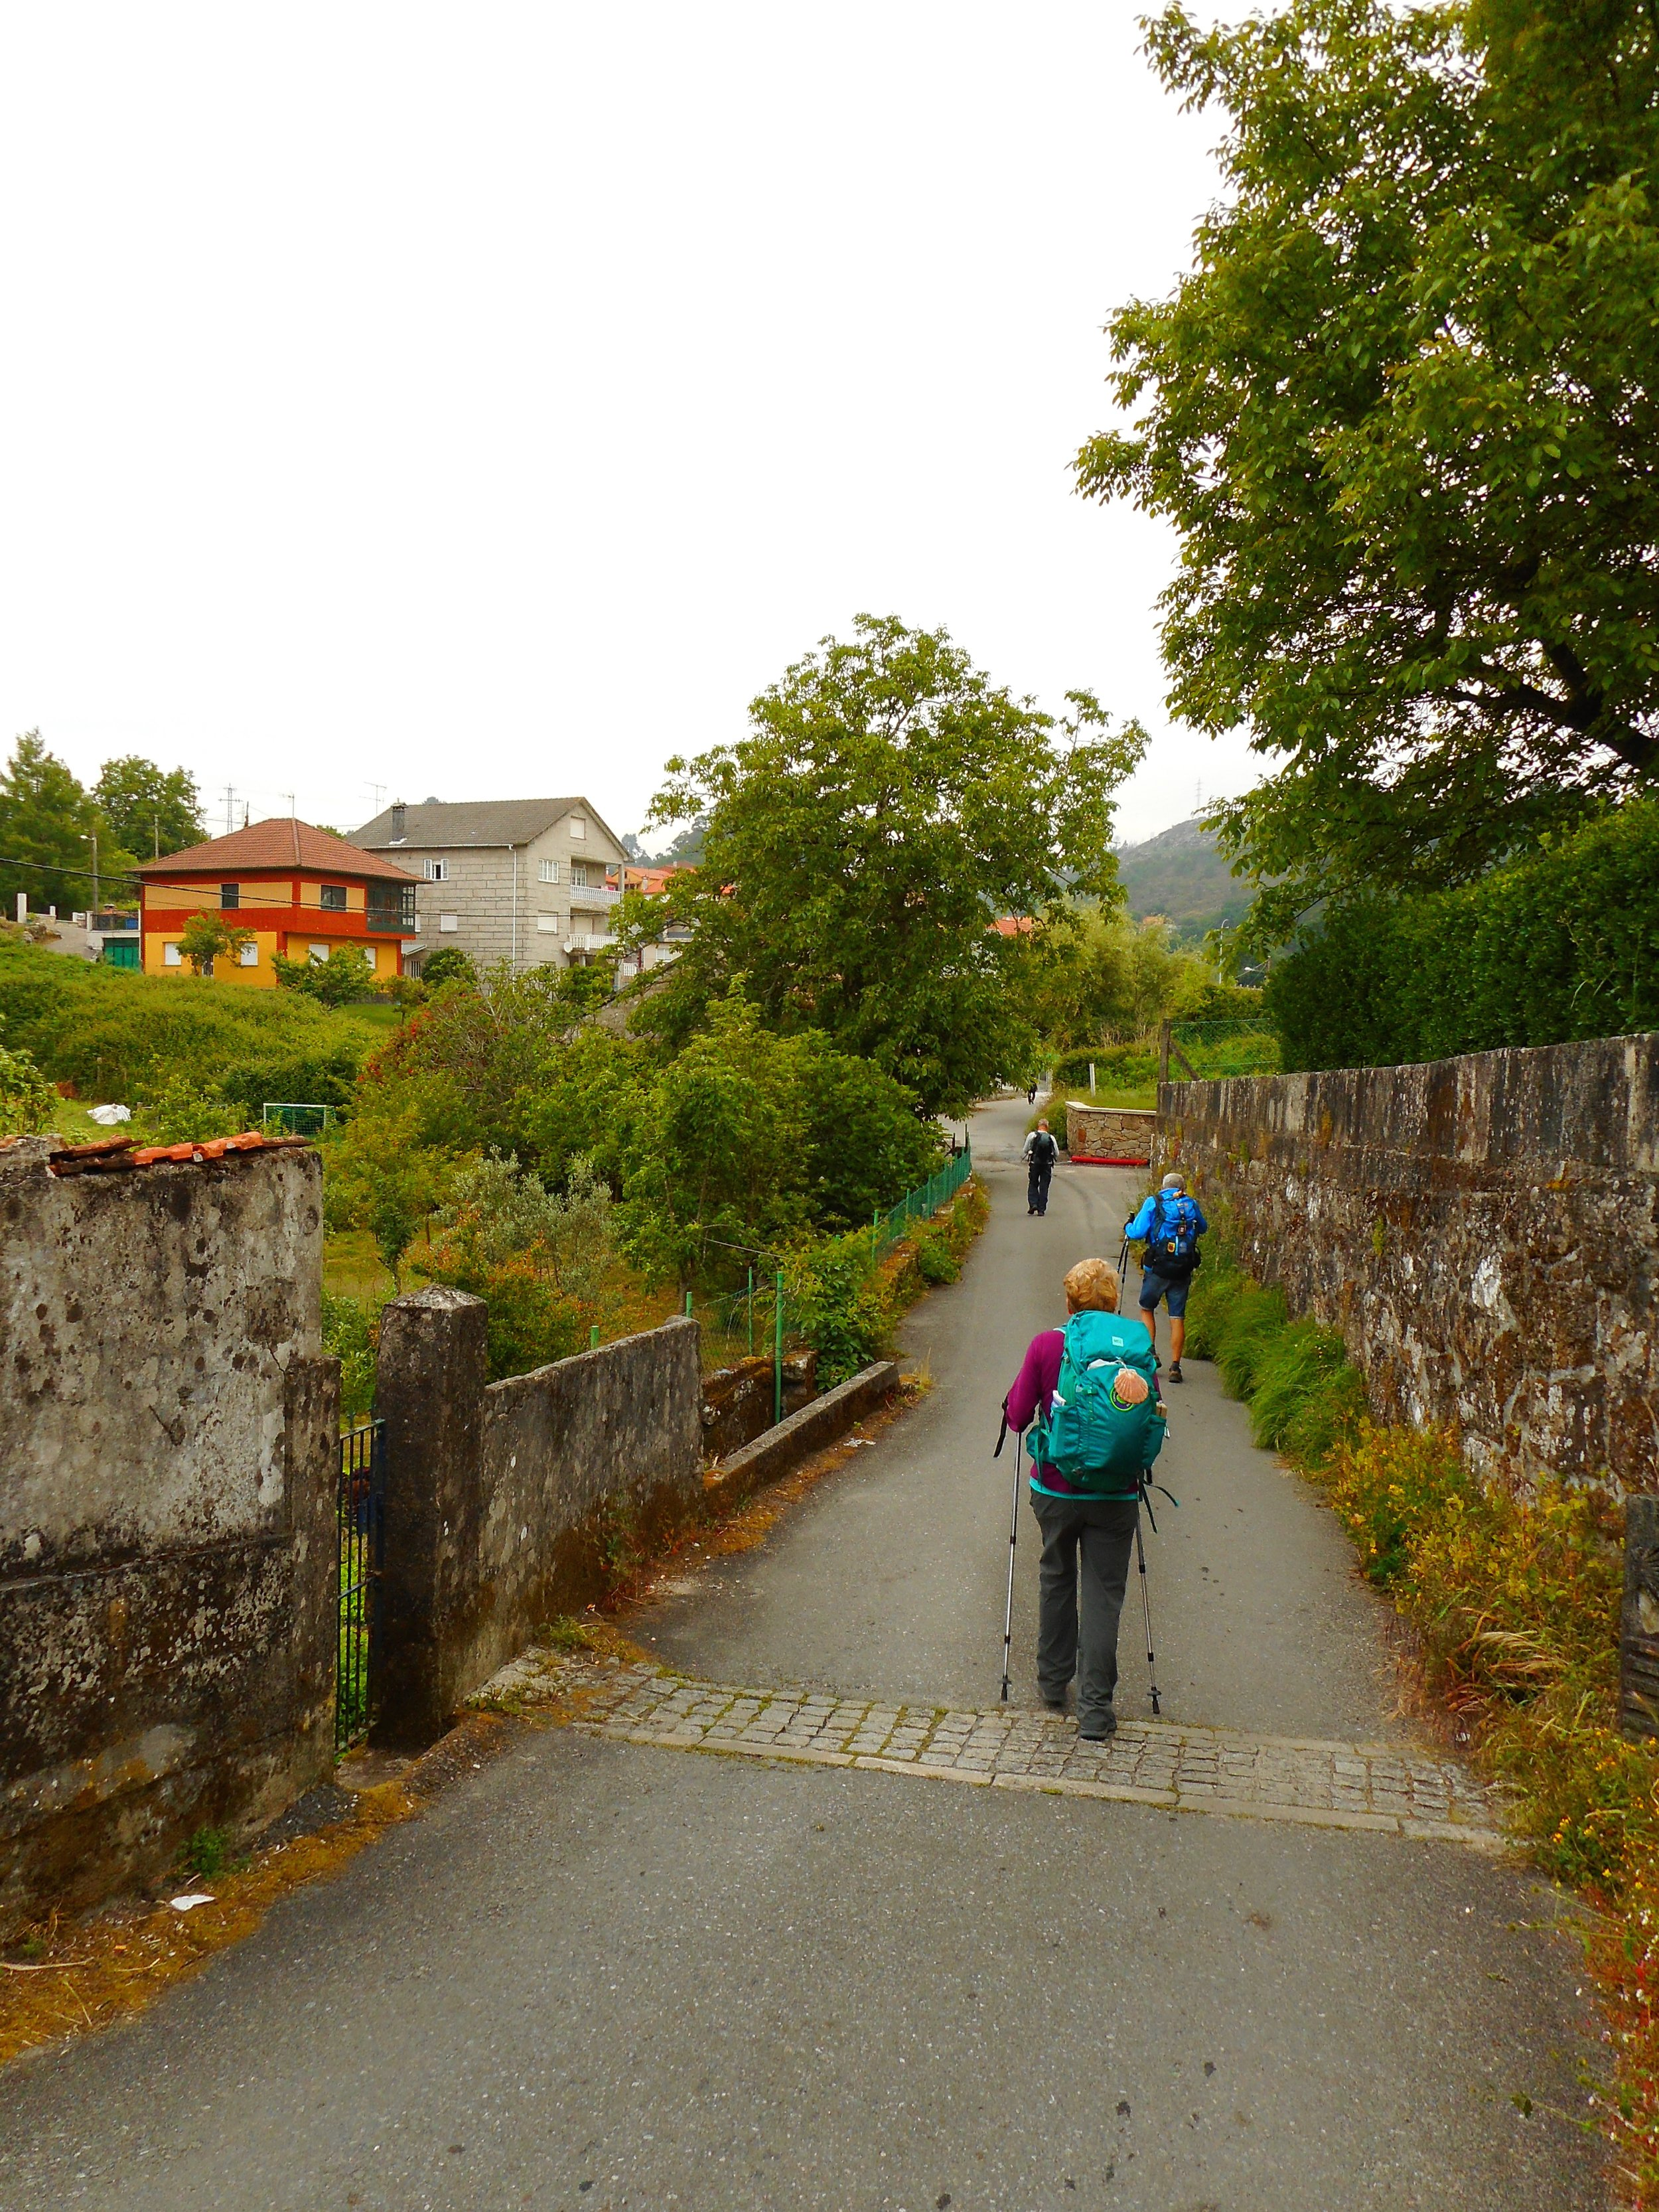 Walking down some of the small streets along the way